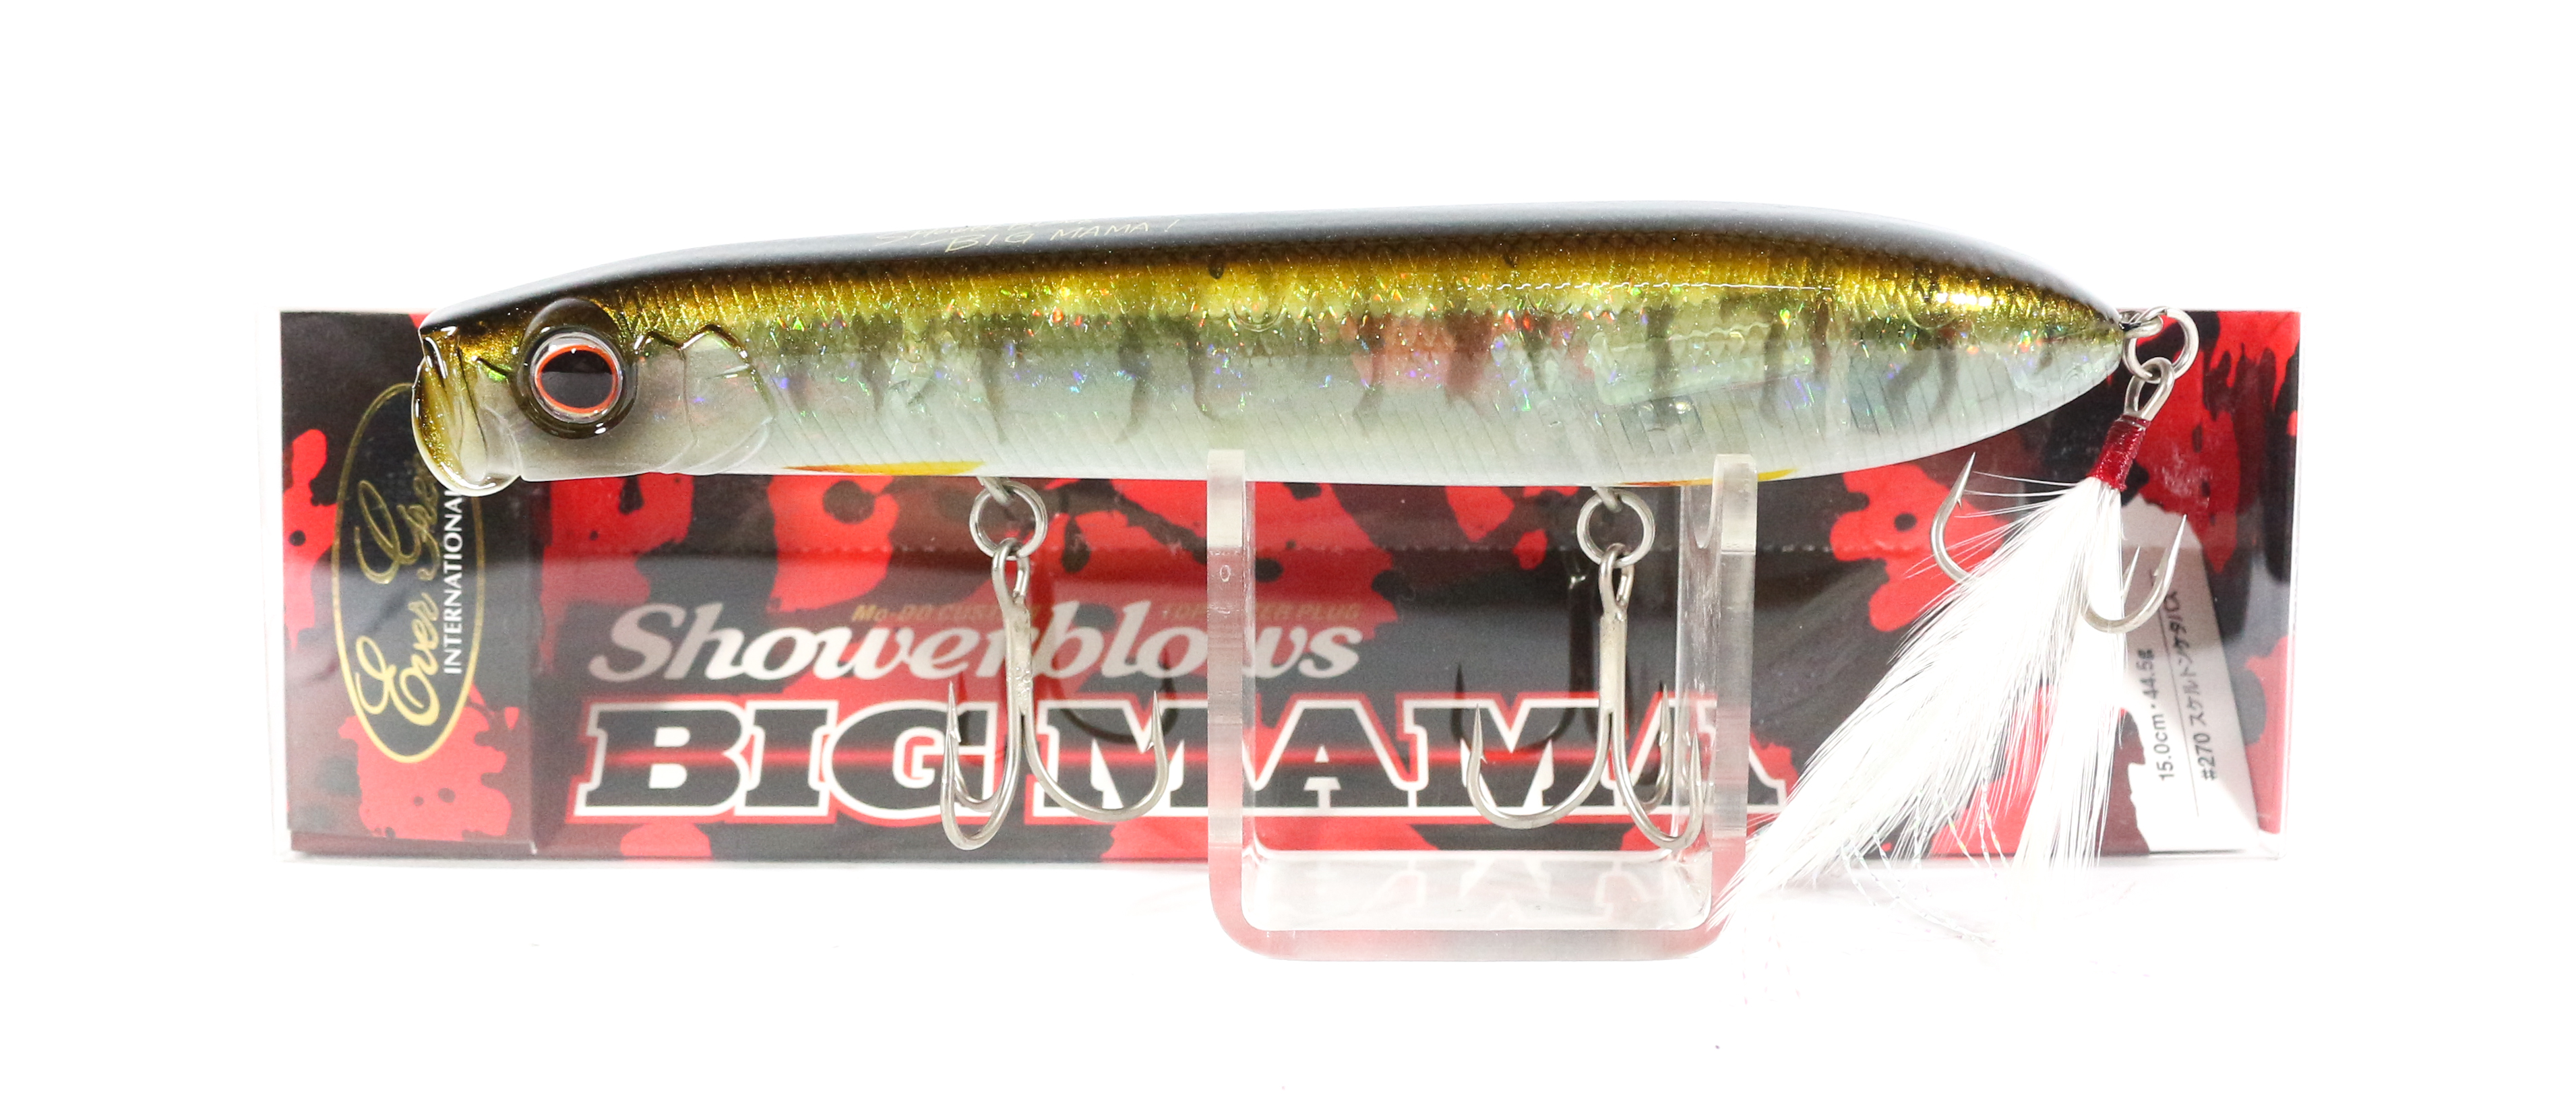 Evergreen Shower Blows Big Mama 150mm Pencil Floating Lure 270 (4366)